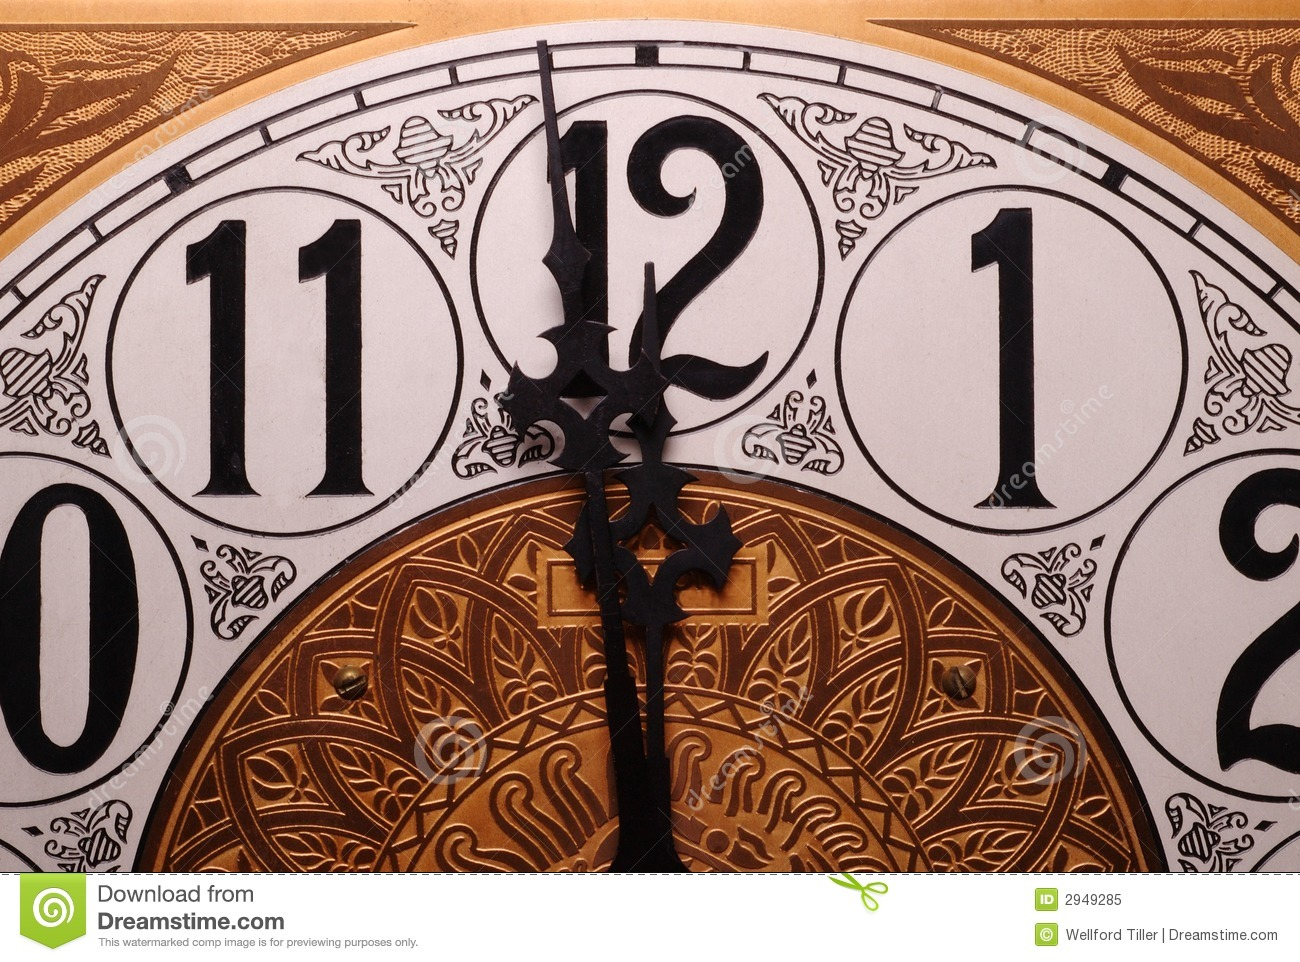 Displaying Images For - Grandfather Clock Midnight...